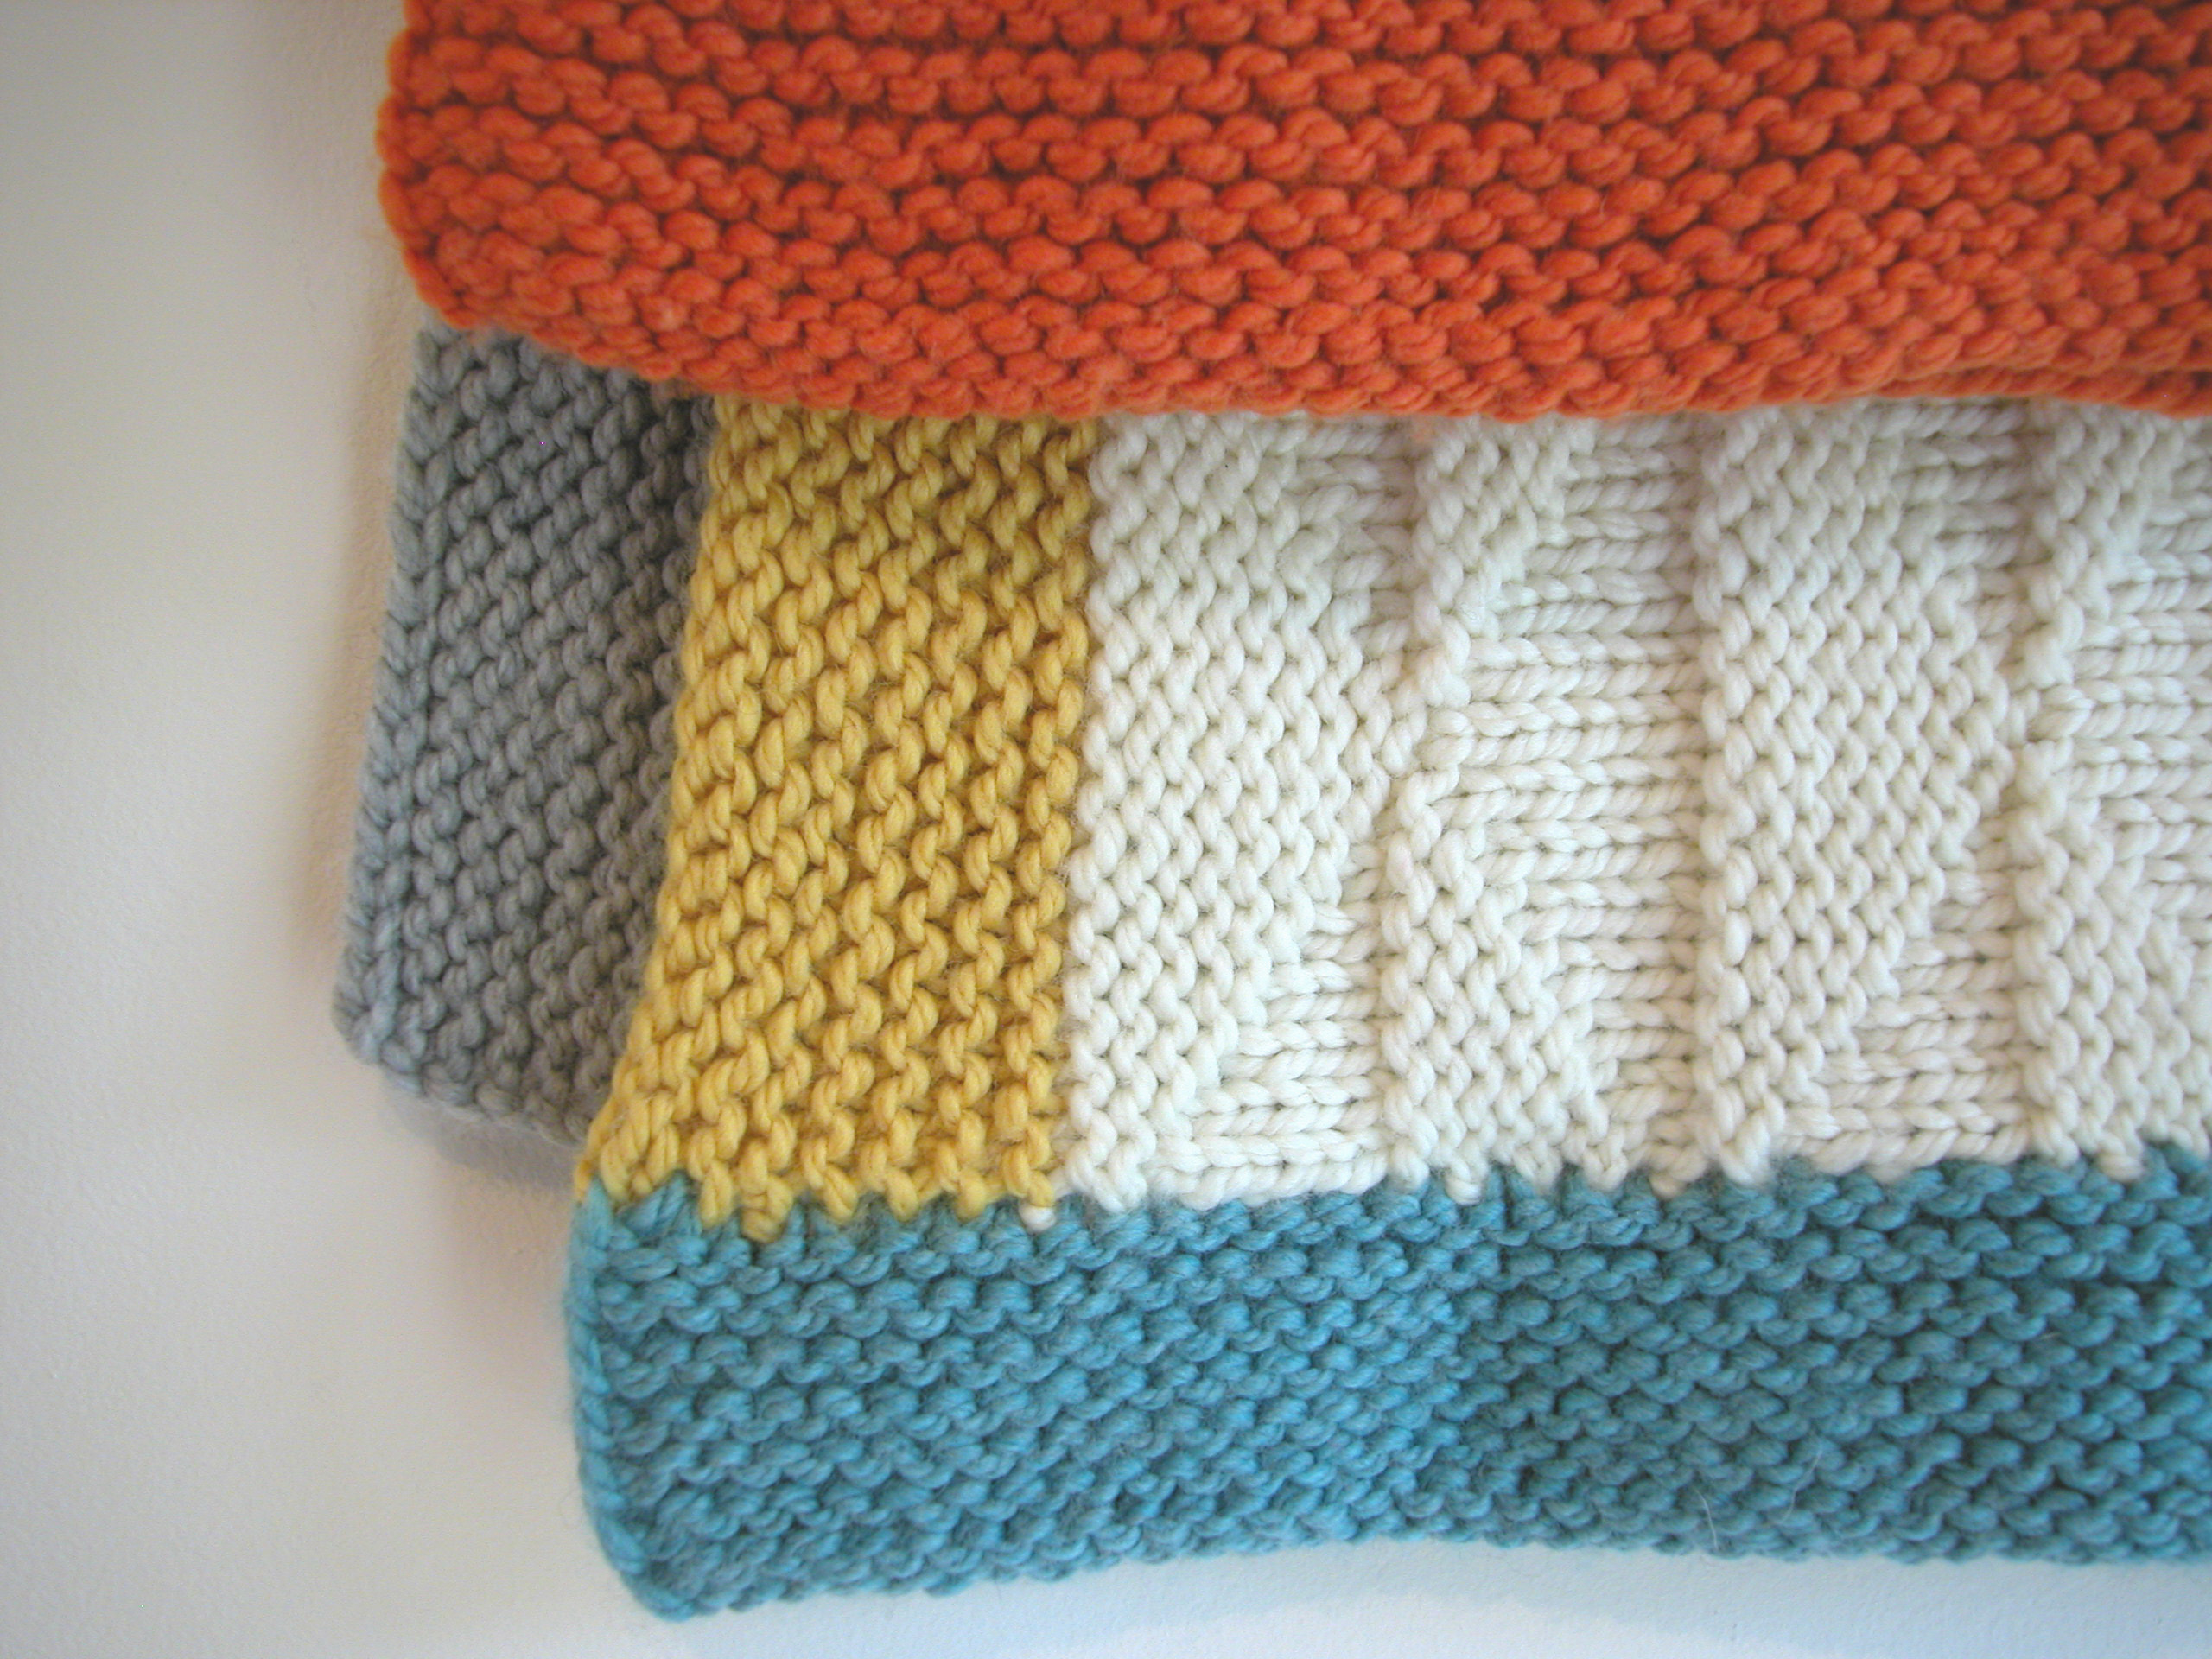 colourful knitting | the knit cafe